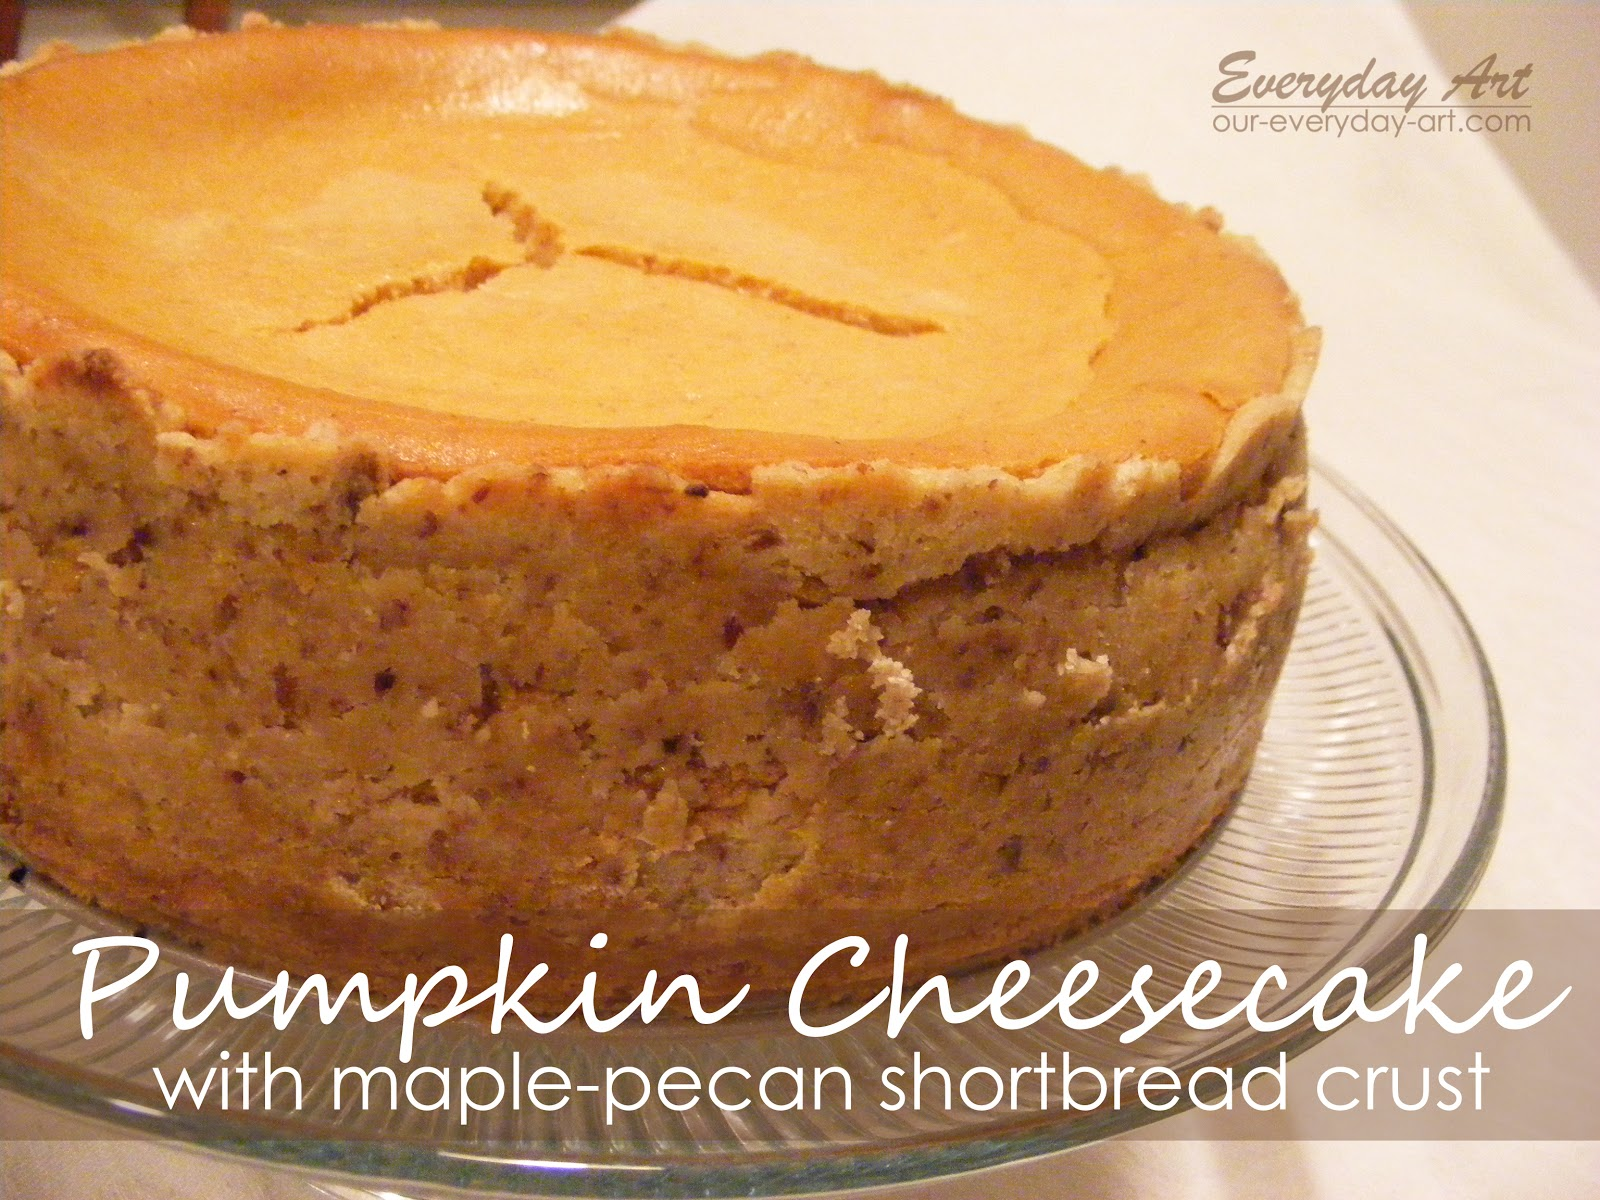 Everyday Art: Pumpkin Cheesecake with Maple-Pecan Shortbread Crust